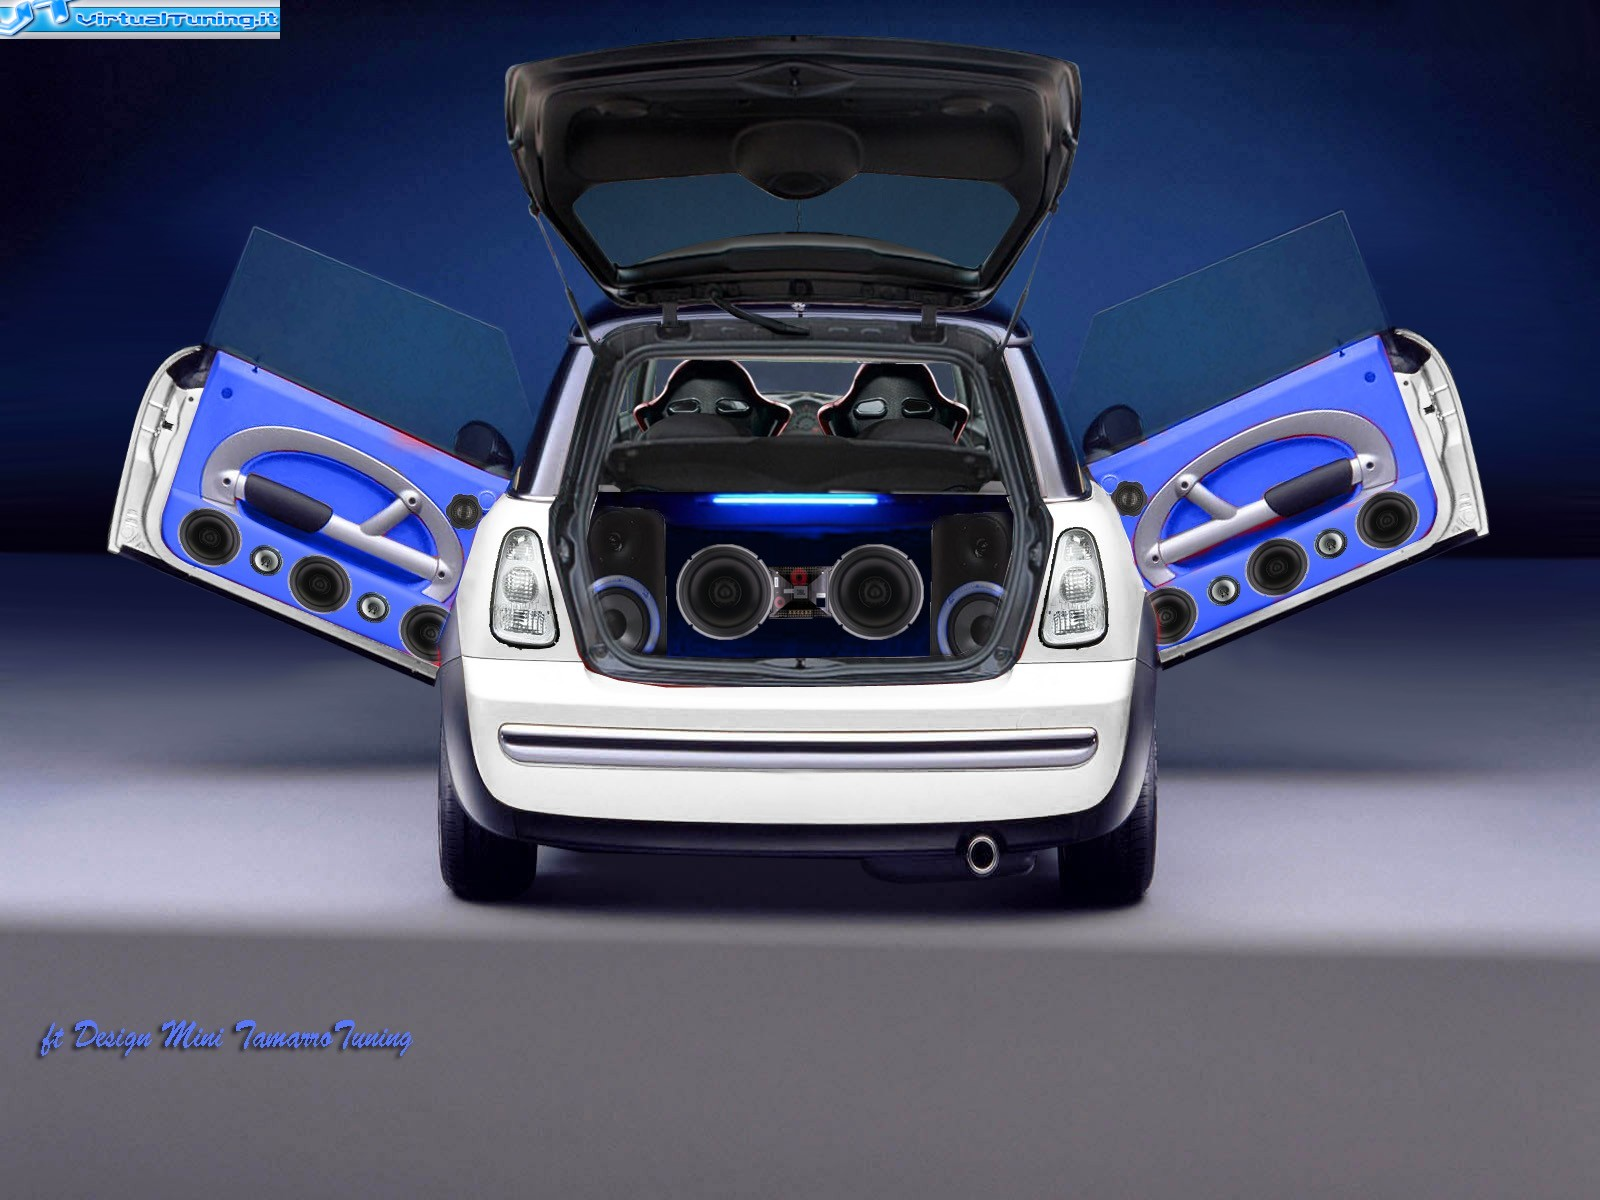 Mini Cooper Tamarro Tuning By Ft Design Virtualtuning